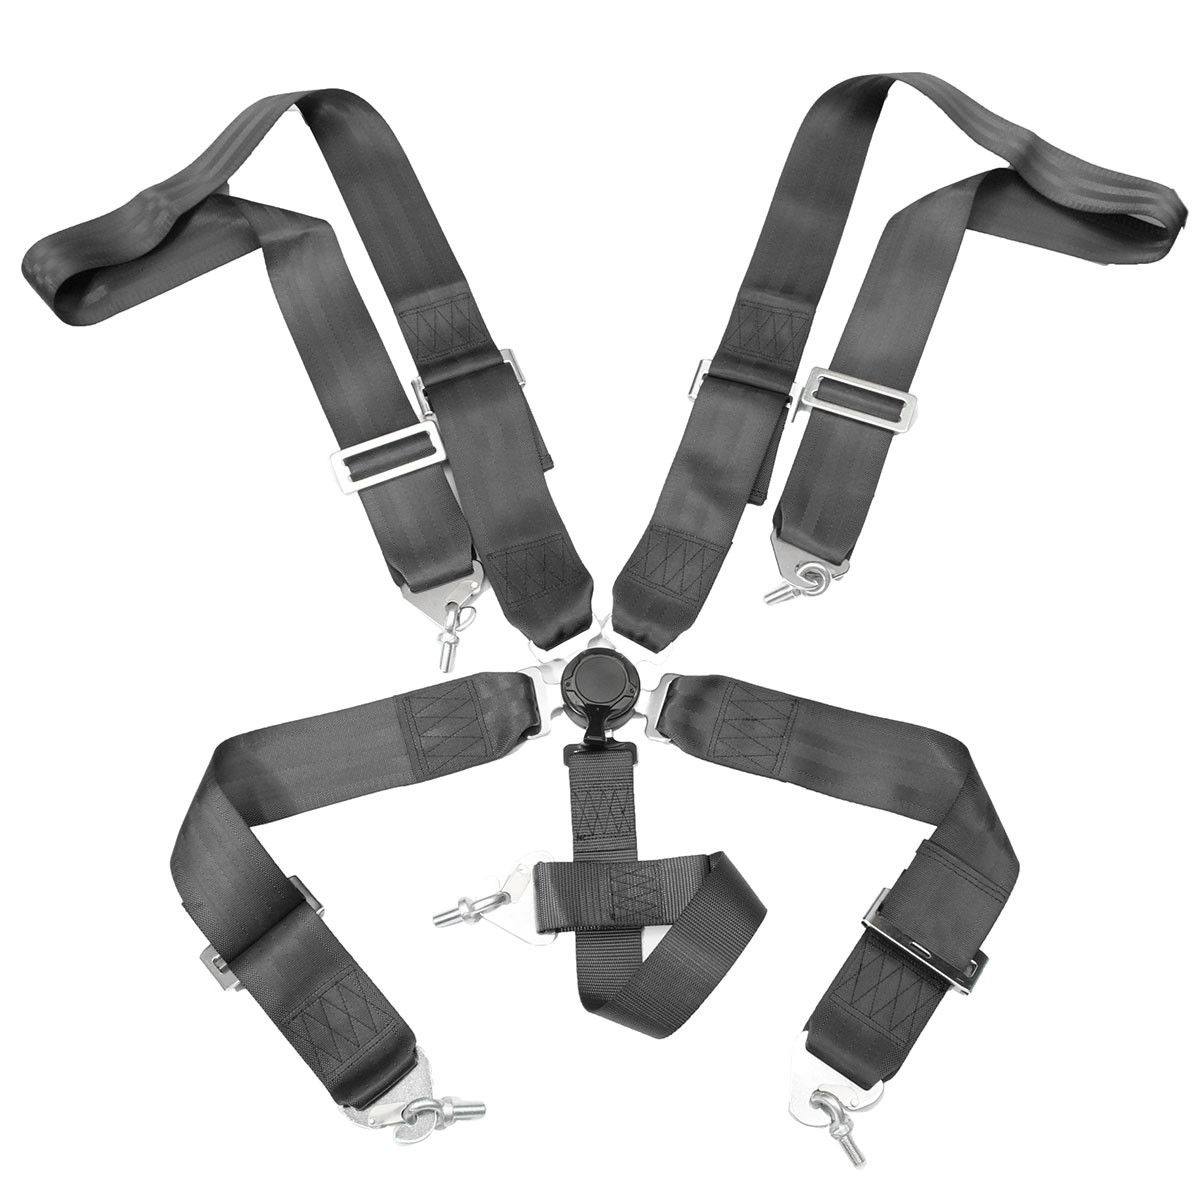 5 Point Cam Lock Racing Car Seat Belt Race Safety